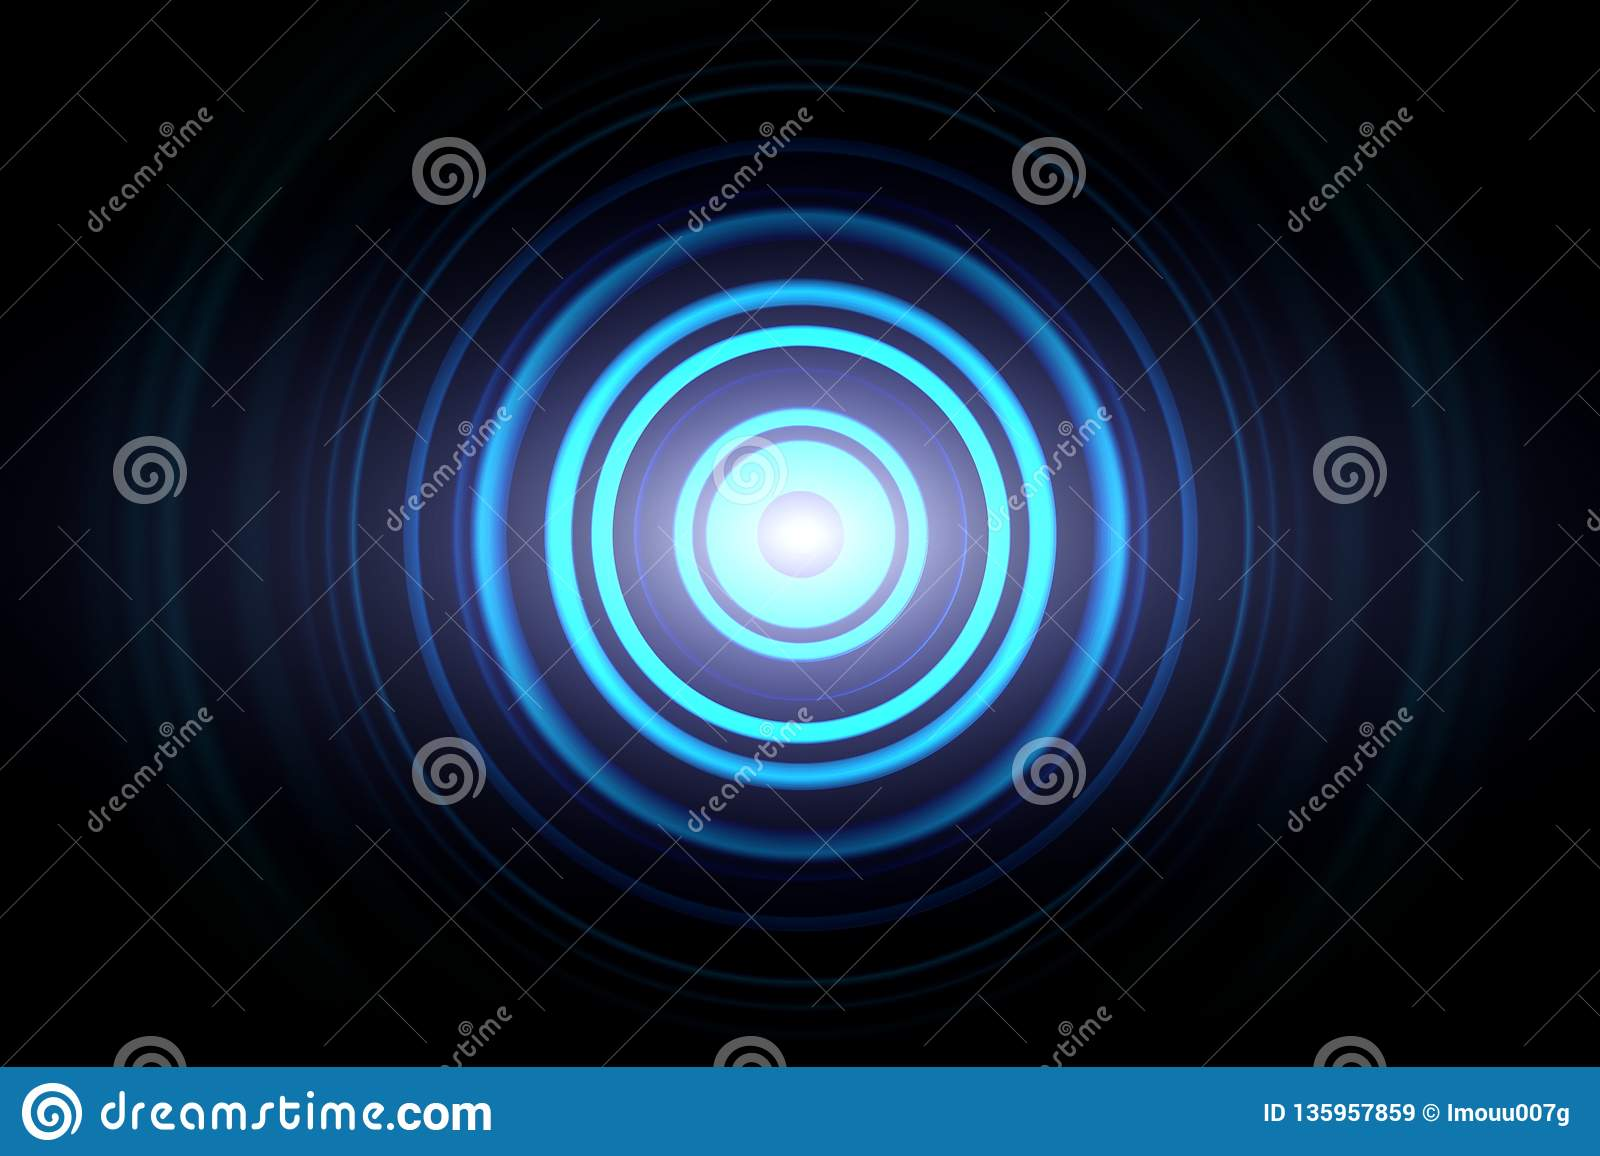 Abstract glowing circle blue light effect with sound waves oscillating background